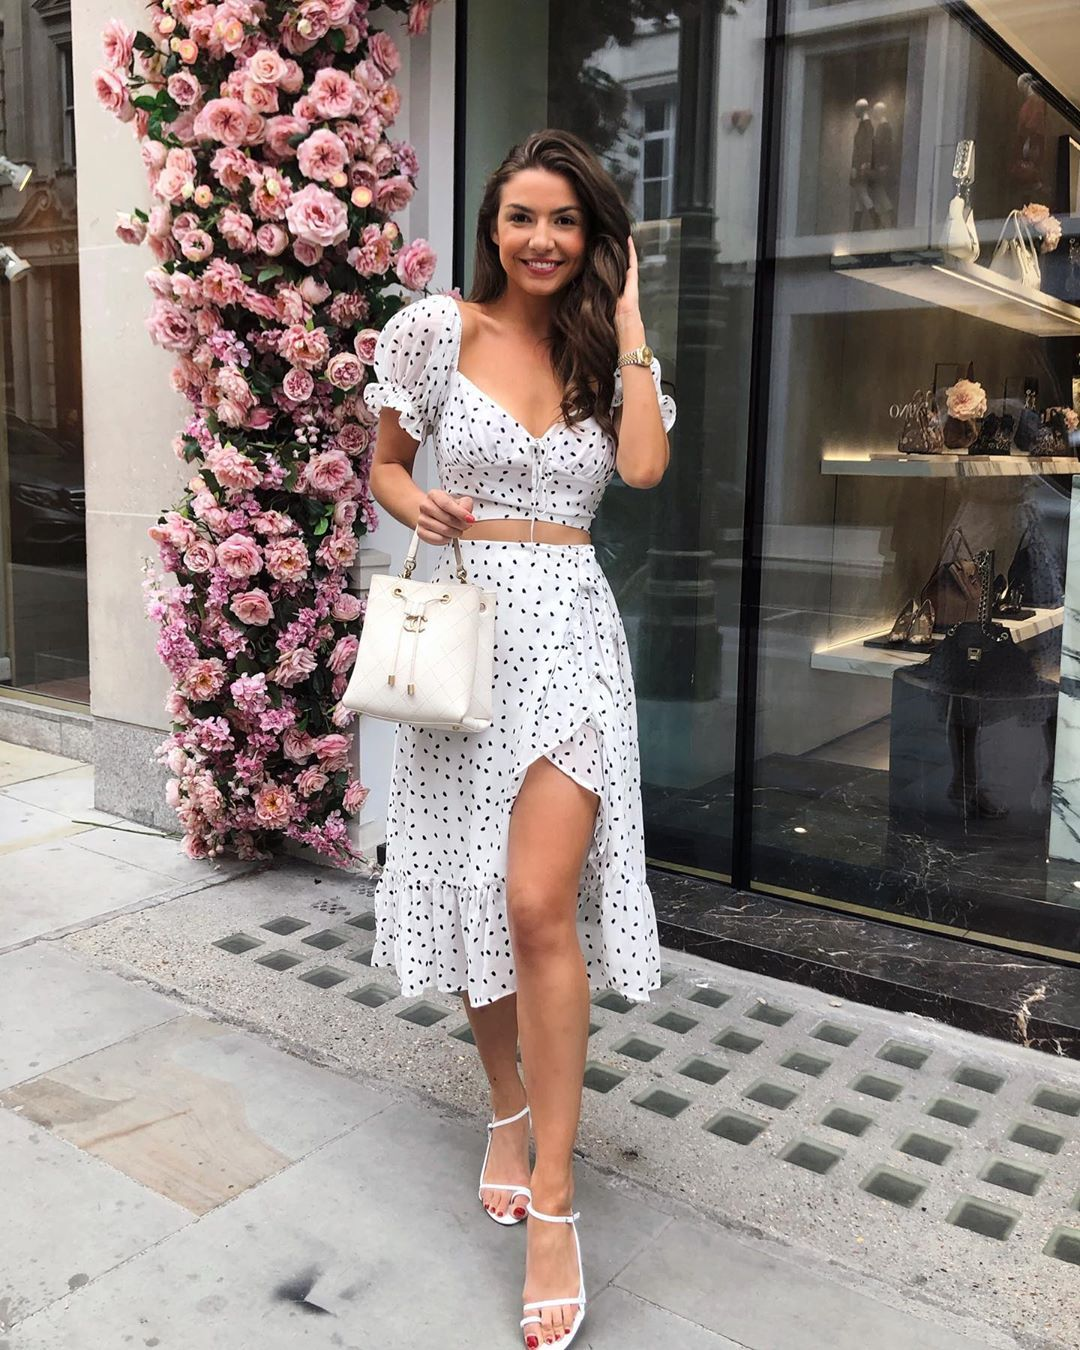 """Photo of Sophie Knight on Instagram: """"When the sun FINALLY shines in London and you get to wear your new summer outfits ❤️ #gifteditems"""""""